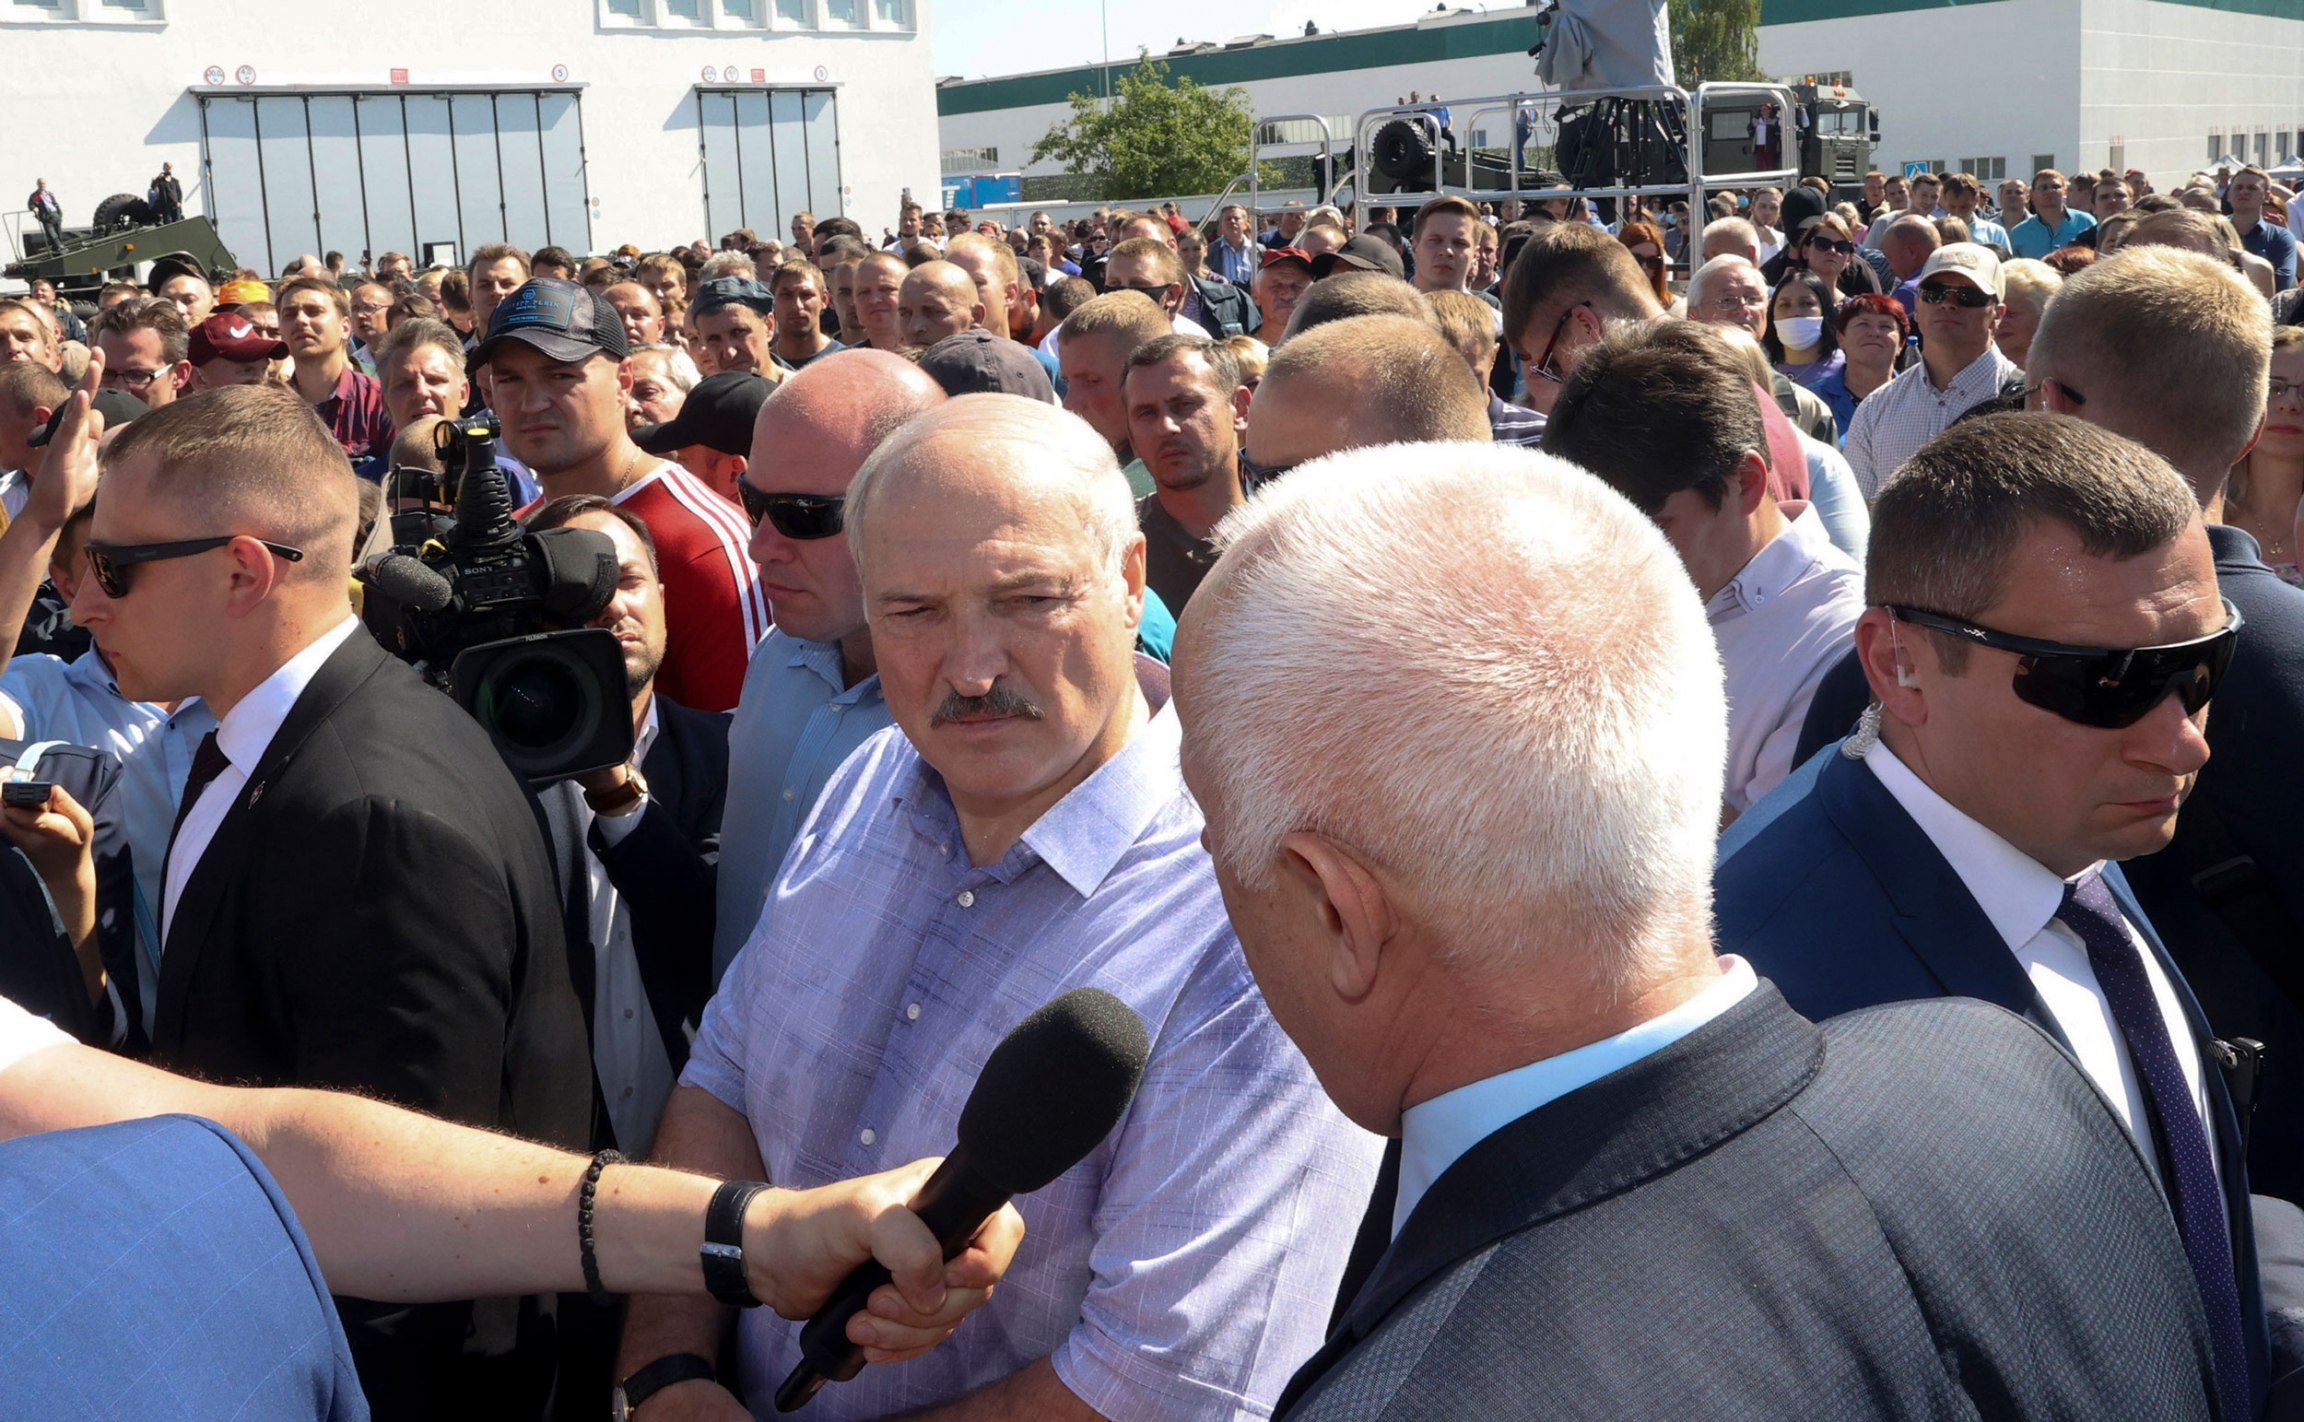 Belarusian President Alexander Lukashenko is shown wearing a blue button down shirt and standing in a large crowd with bodyguards surrounding him.